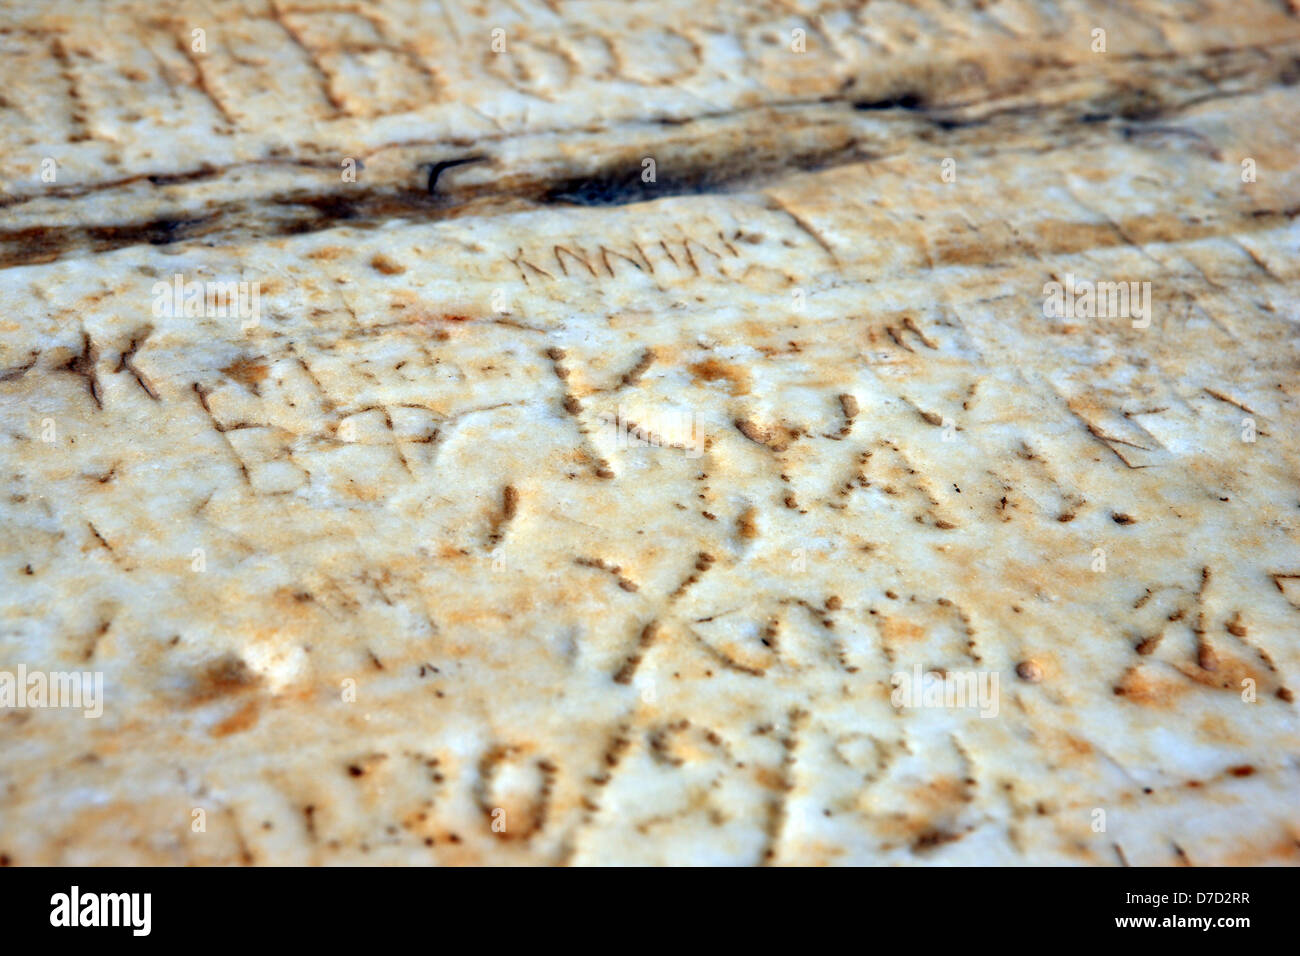 Graffiti scratched into marble at the Acropolis in Athens Greece - Stock Image